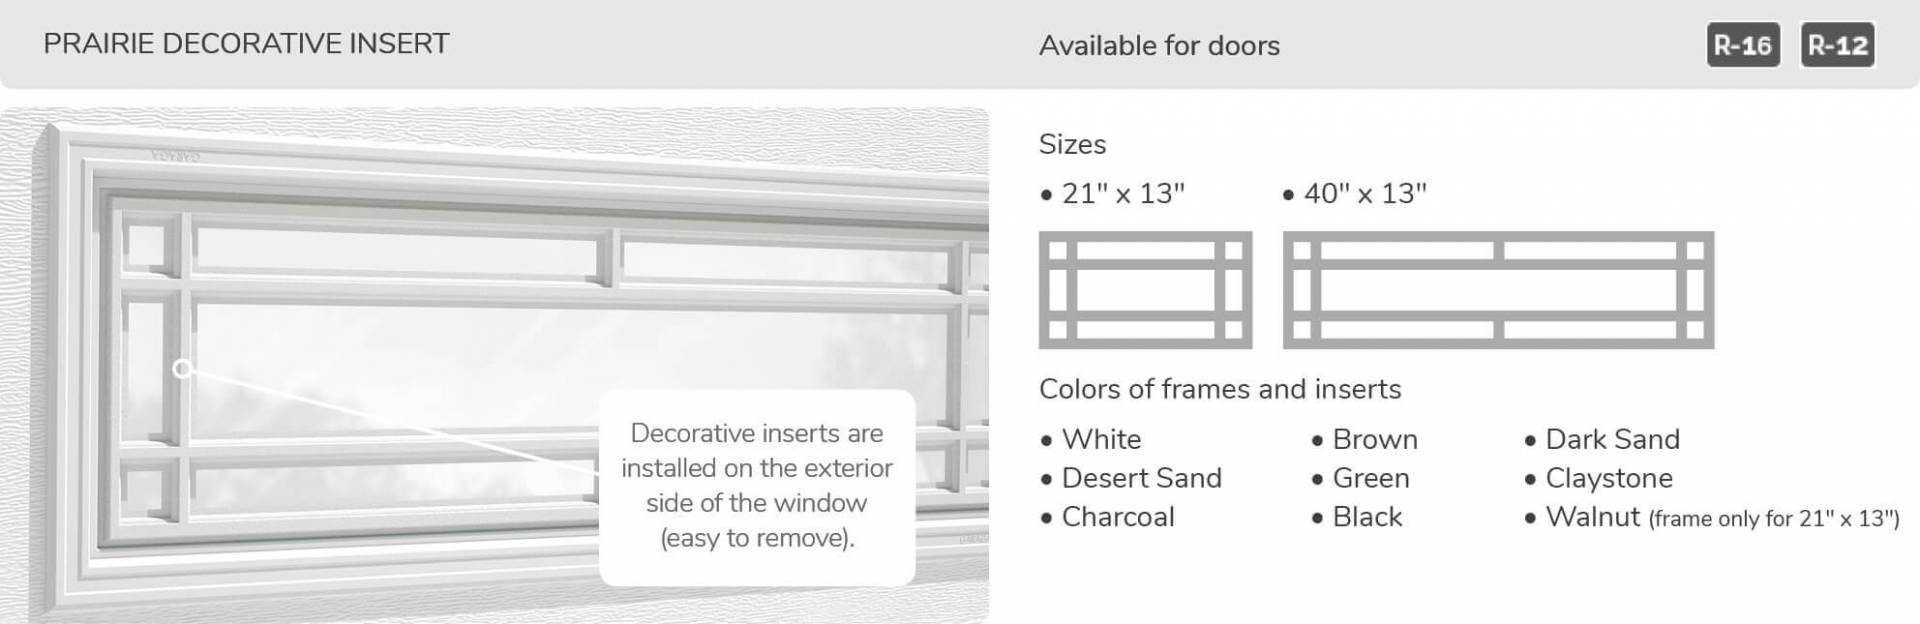 Prairie Decorative Insert, 21' x 13' and 40' x 13', available for door R-16 and R-12